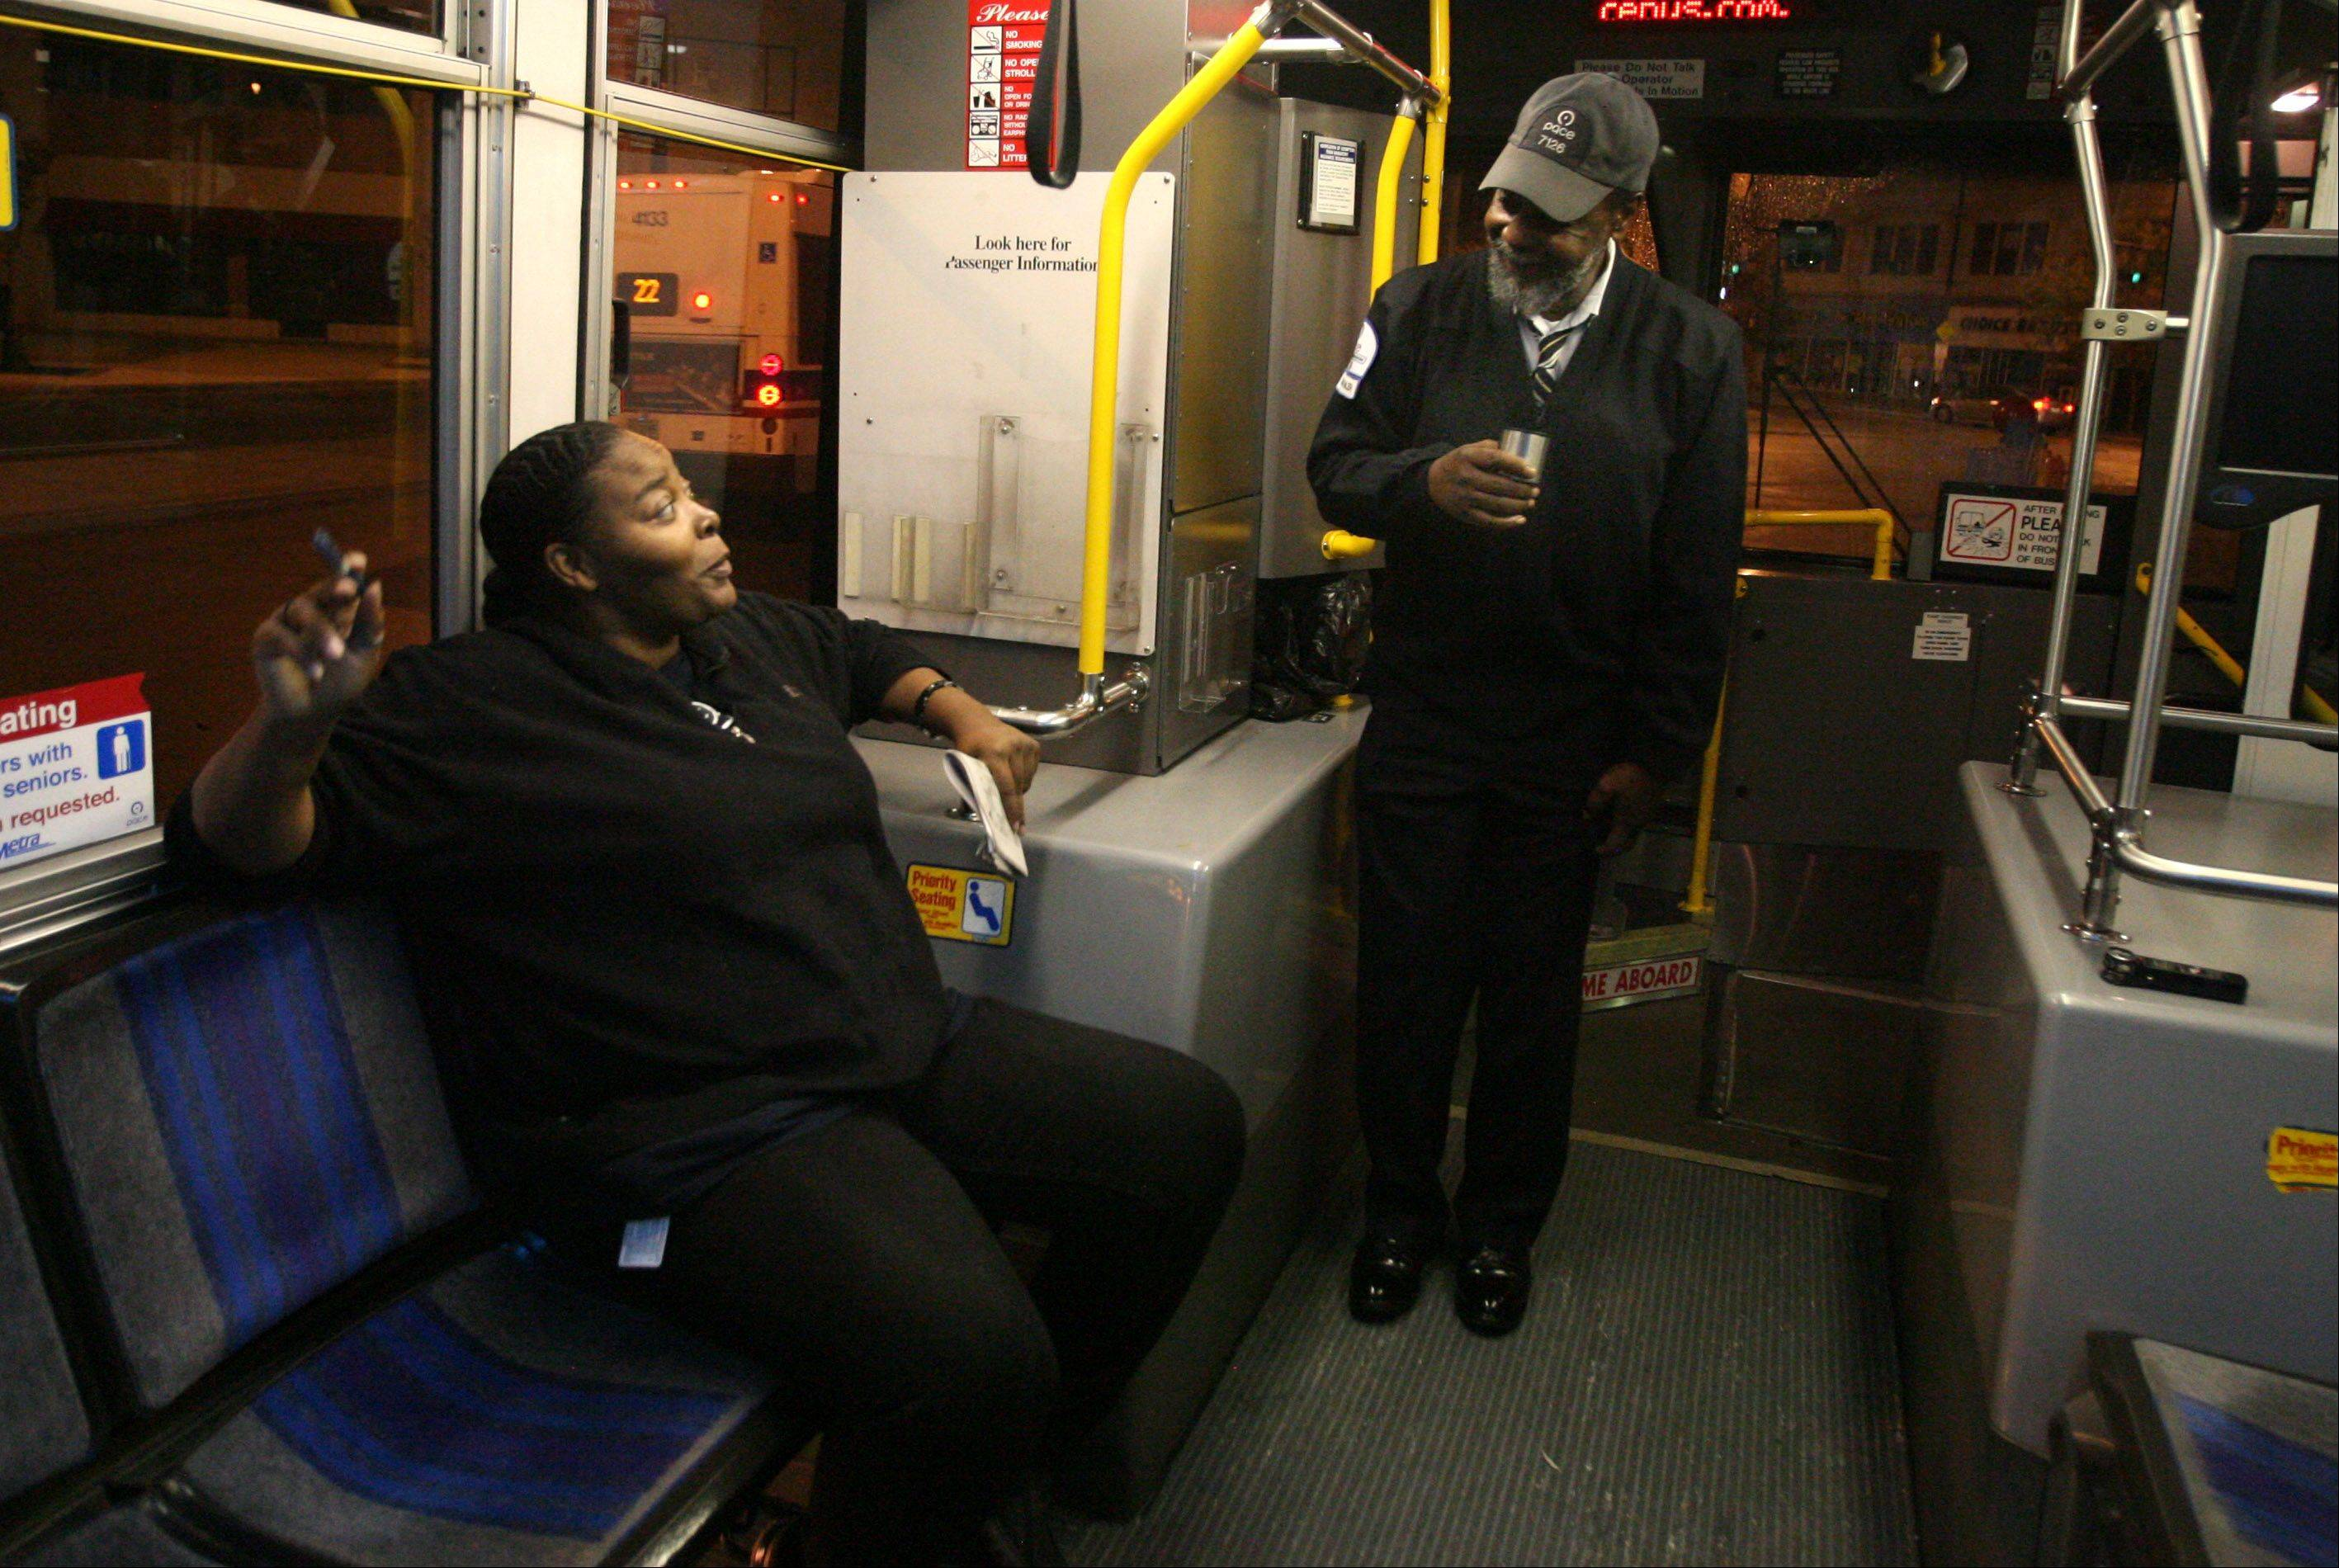 Route 290 Pace bus operator Michael Brown enjoys a cup of homemade coffee from his silver thermos while talking with passenger Hyacinth Taylor during a 10-minute break at the Howard CTA Red Line station in Evanston.